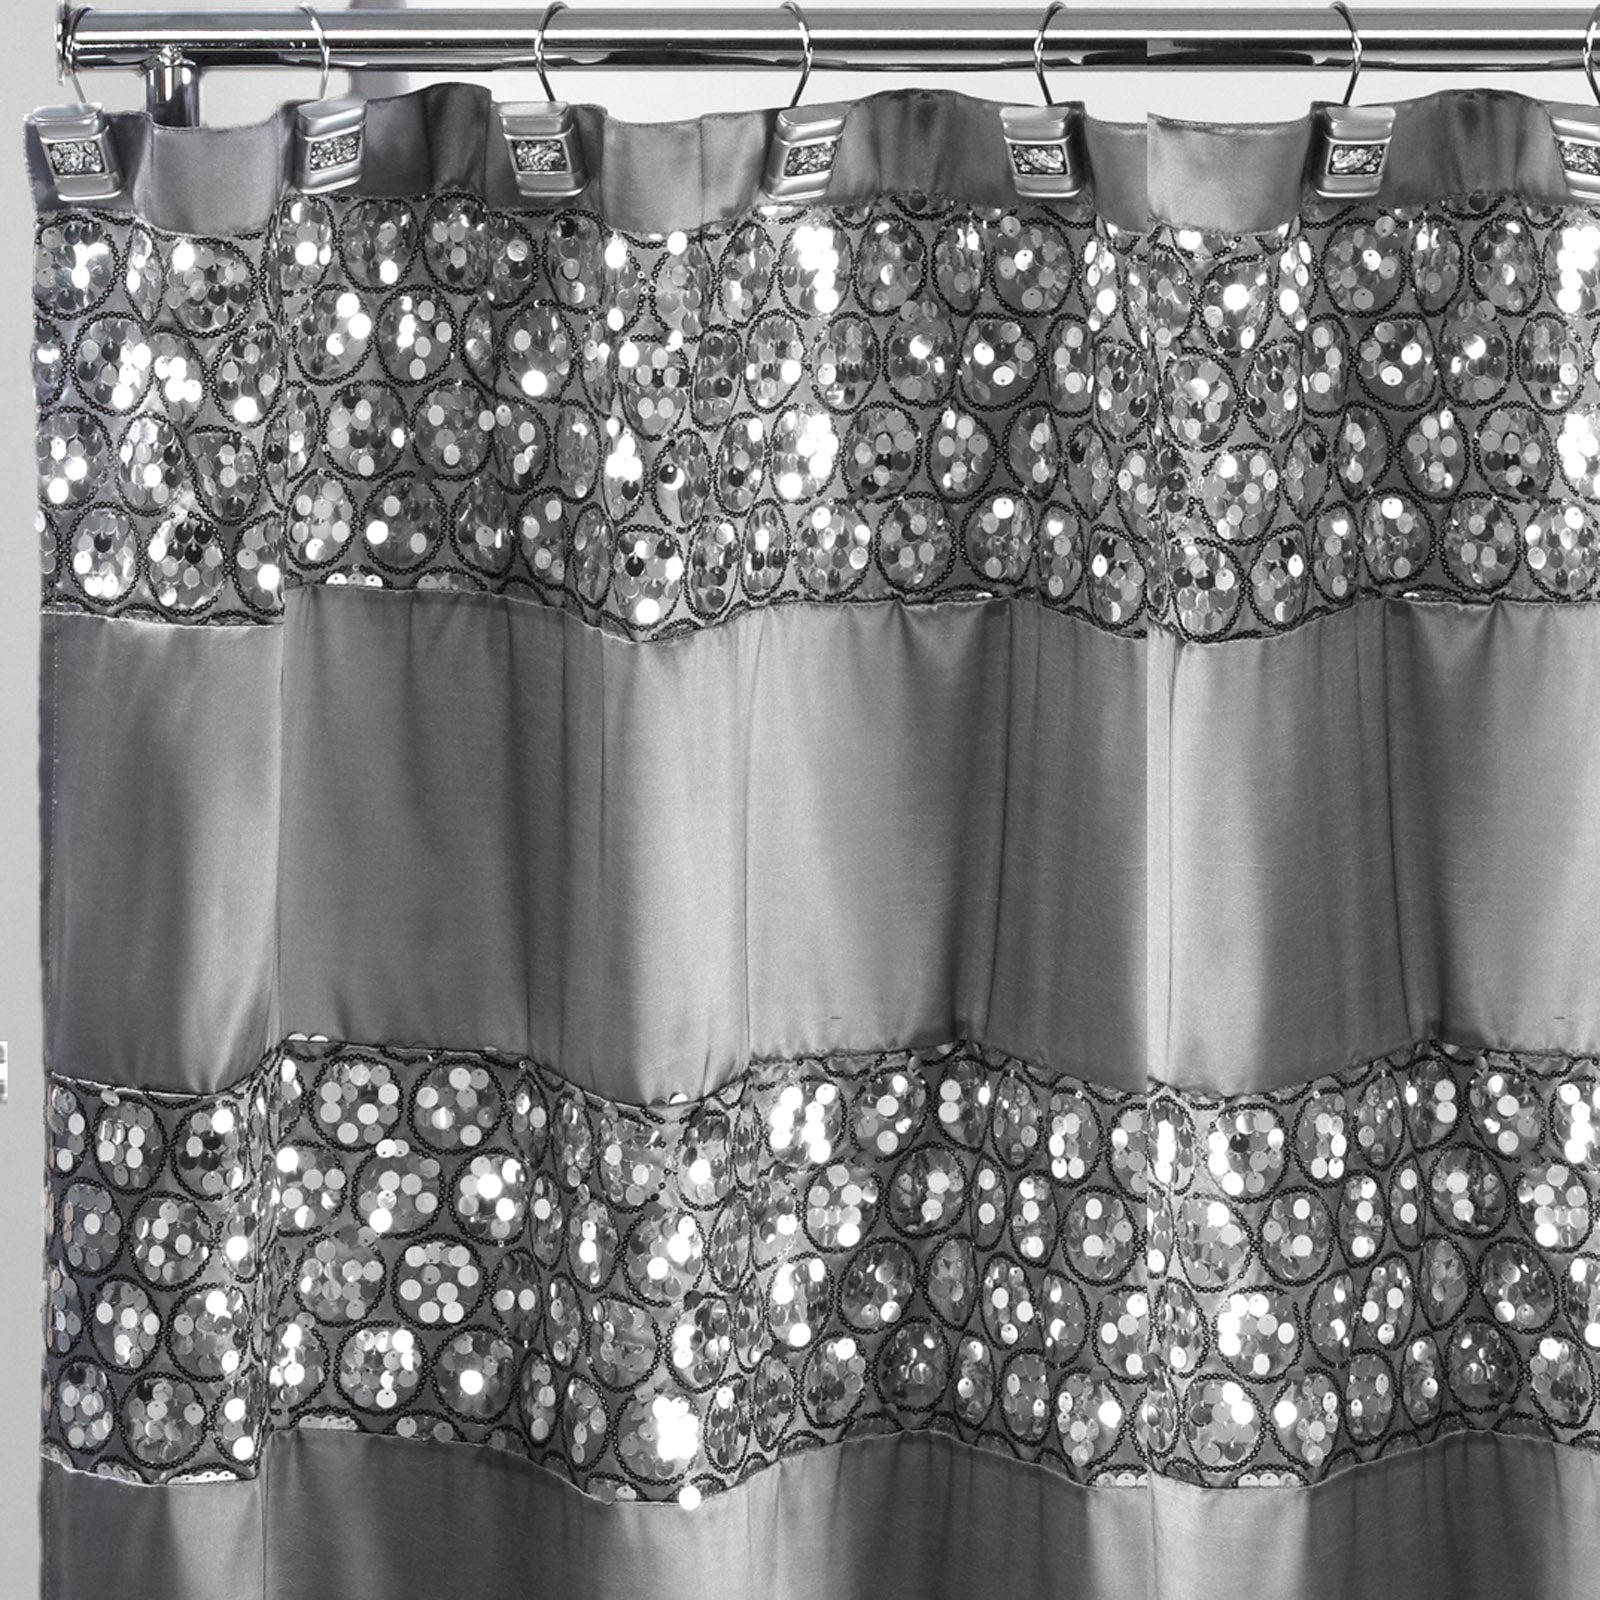 curtain product flame colonial retardant stage curtains fabric gray cloth commando